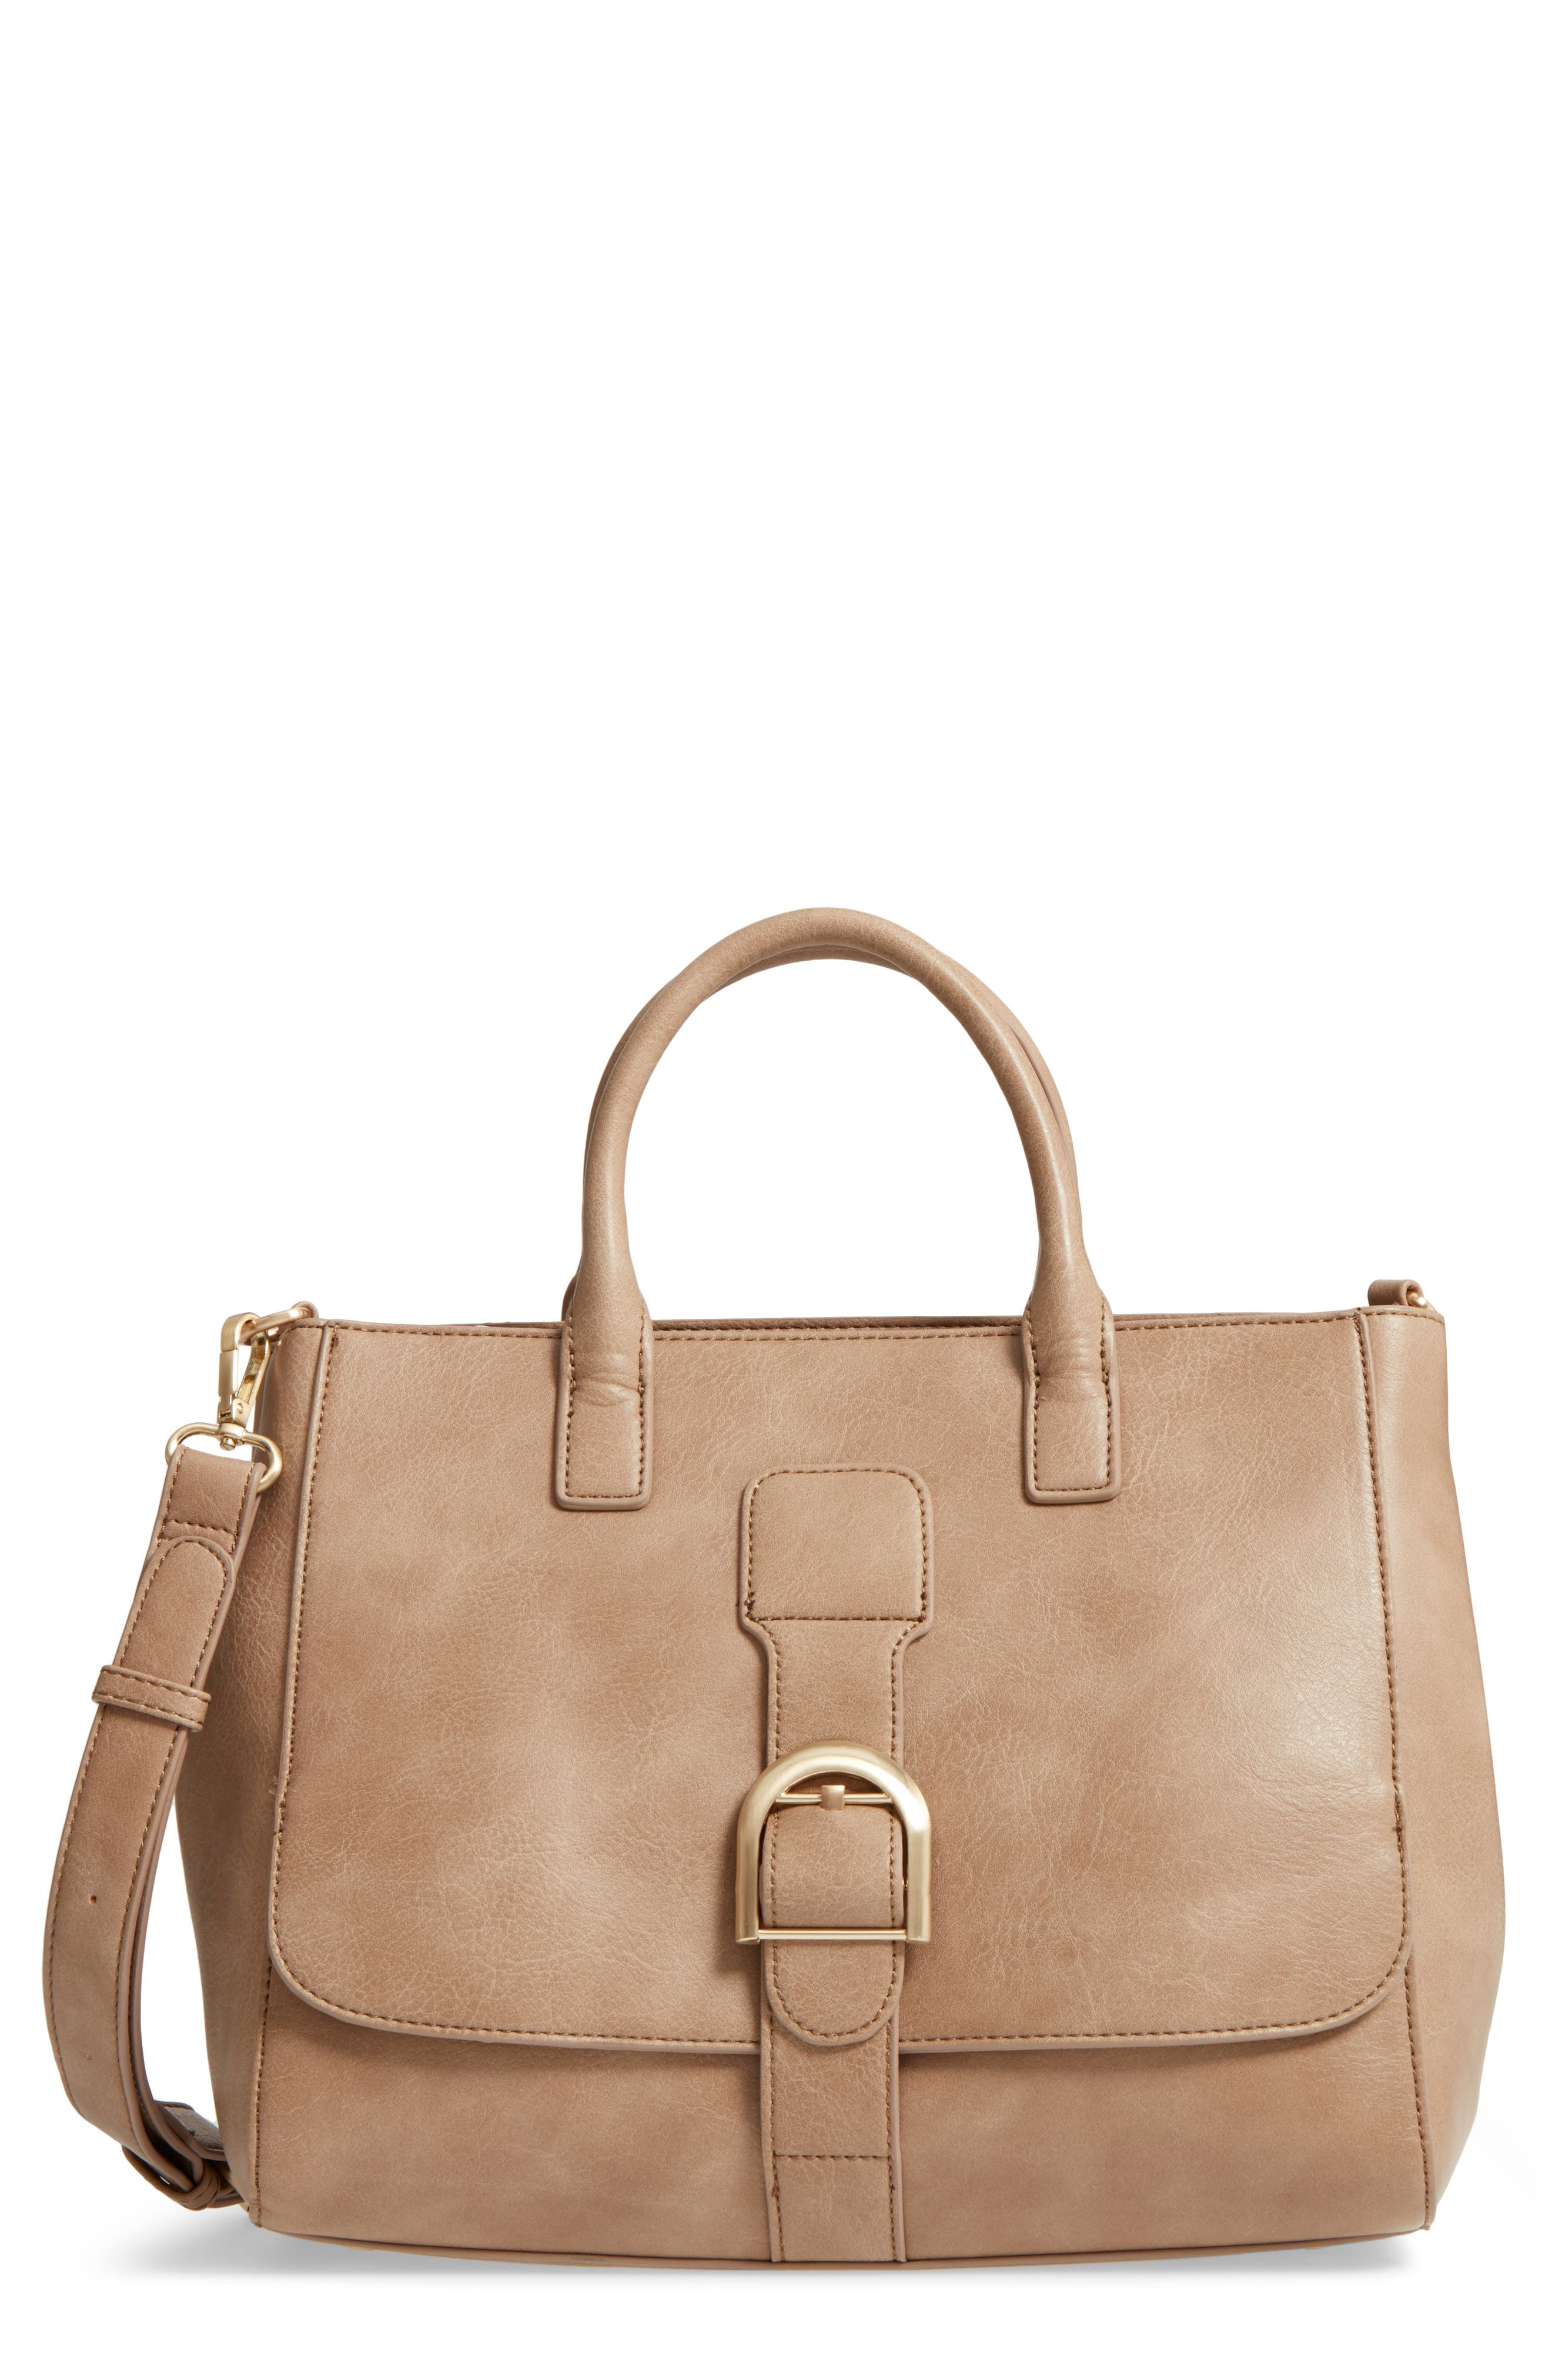 Alternate Image 1 Selected - Sole Society Zola Faux Leather Satchel